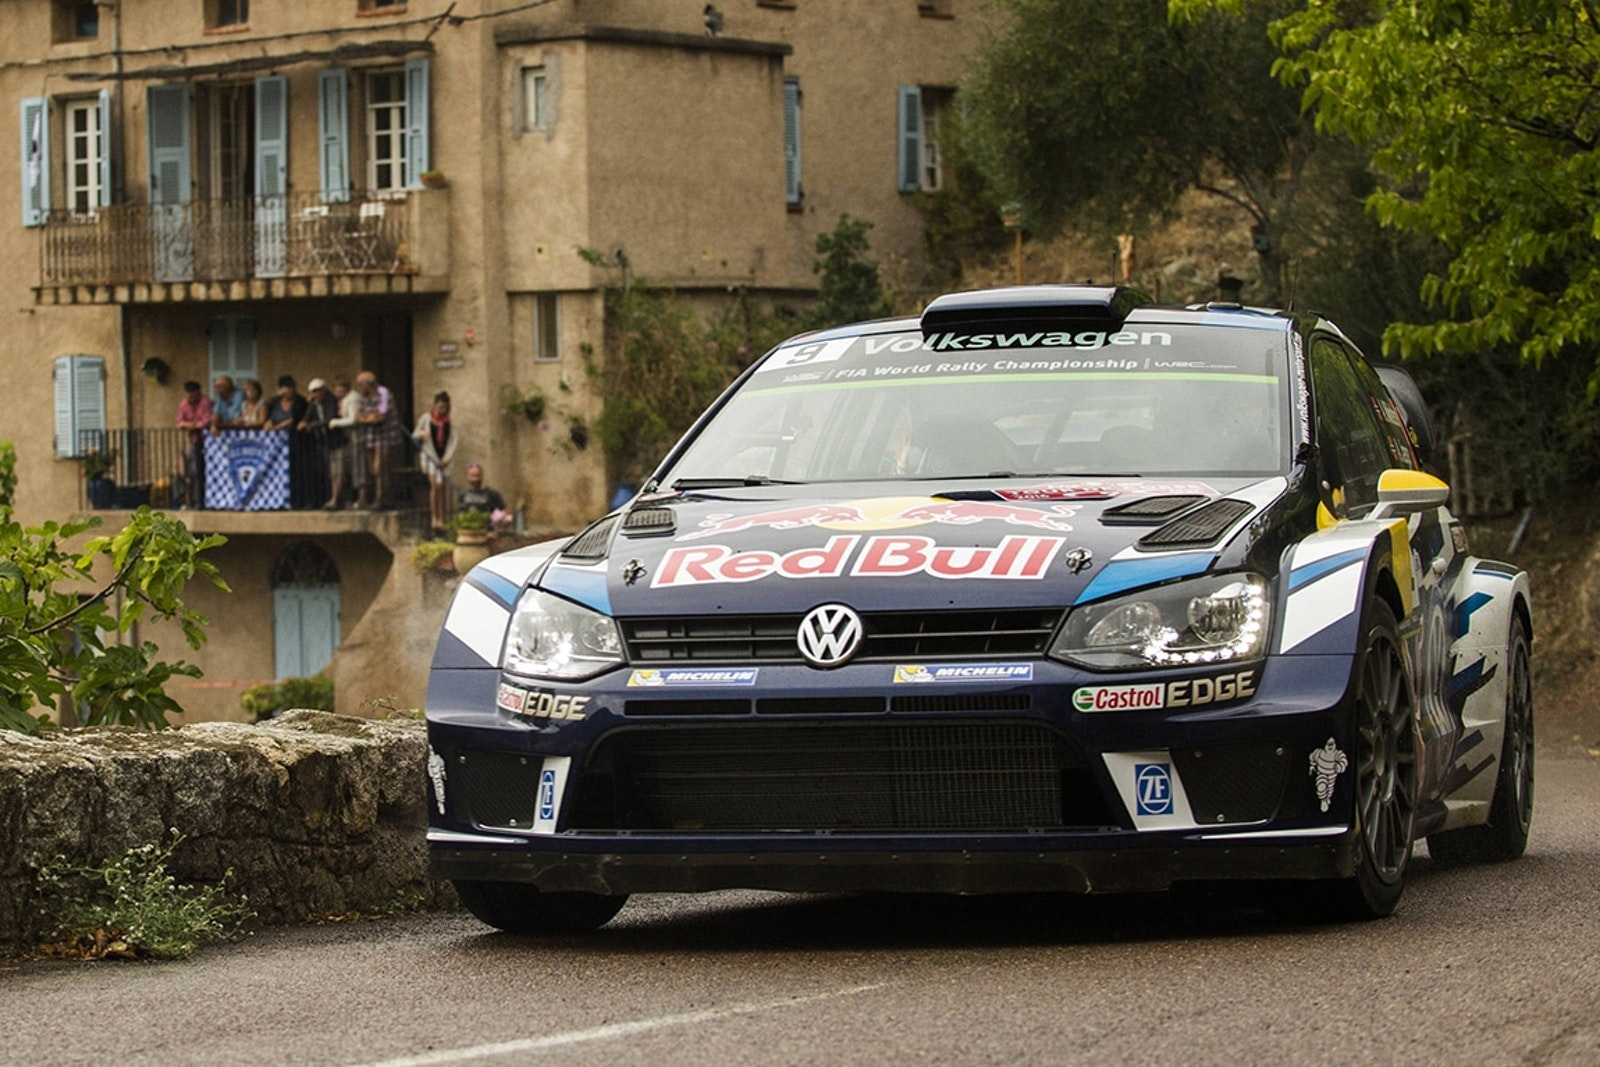 Andreas Mikkelsen (NOR) performs during  FIA World Rally Championship 2016 France in Ajaccio , France on October 1, 2016 // Jaanus Ree/Red Bull Content Pool // P-20161001-02091 // Usage for editorial use only // Please go to www.redbullcontentpool.com for further information. //